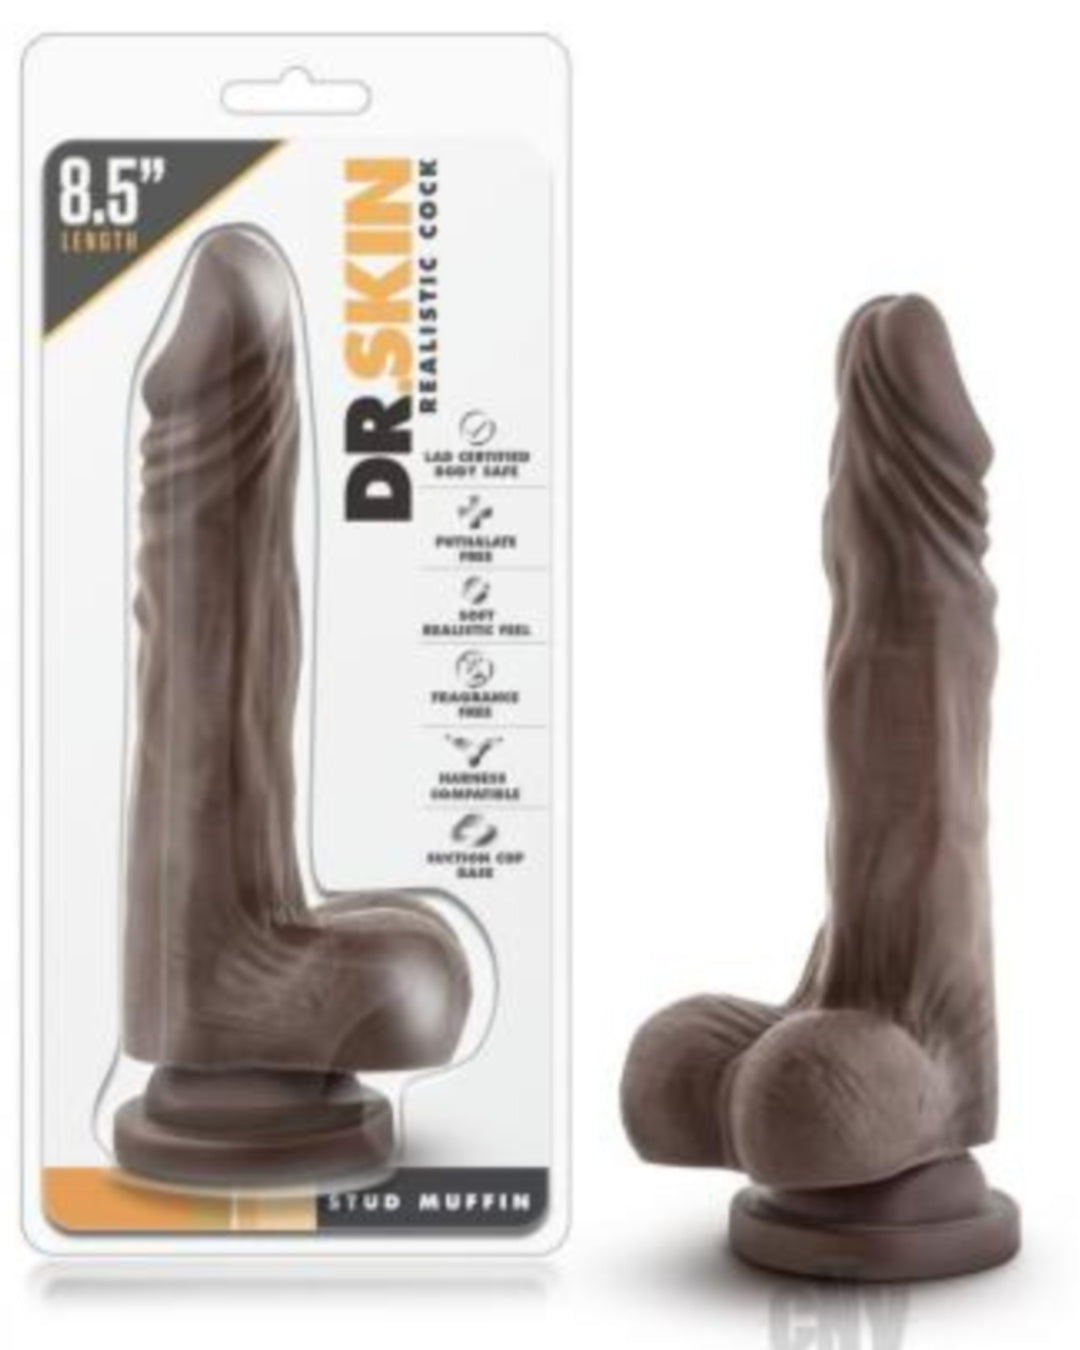 Dr Skin Stud Muffin 8.5 Inch Realistic Dildo with Suction Cup by Blush Novelties - Chocolate in Package